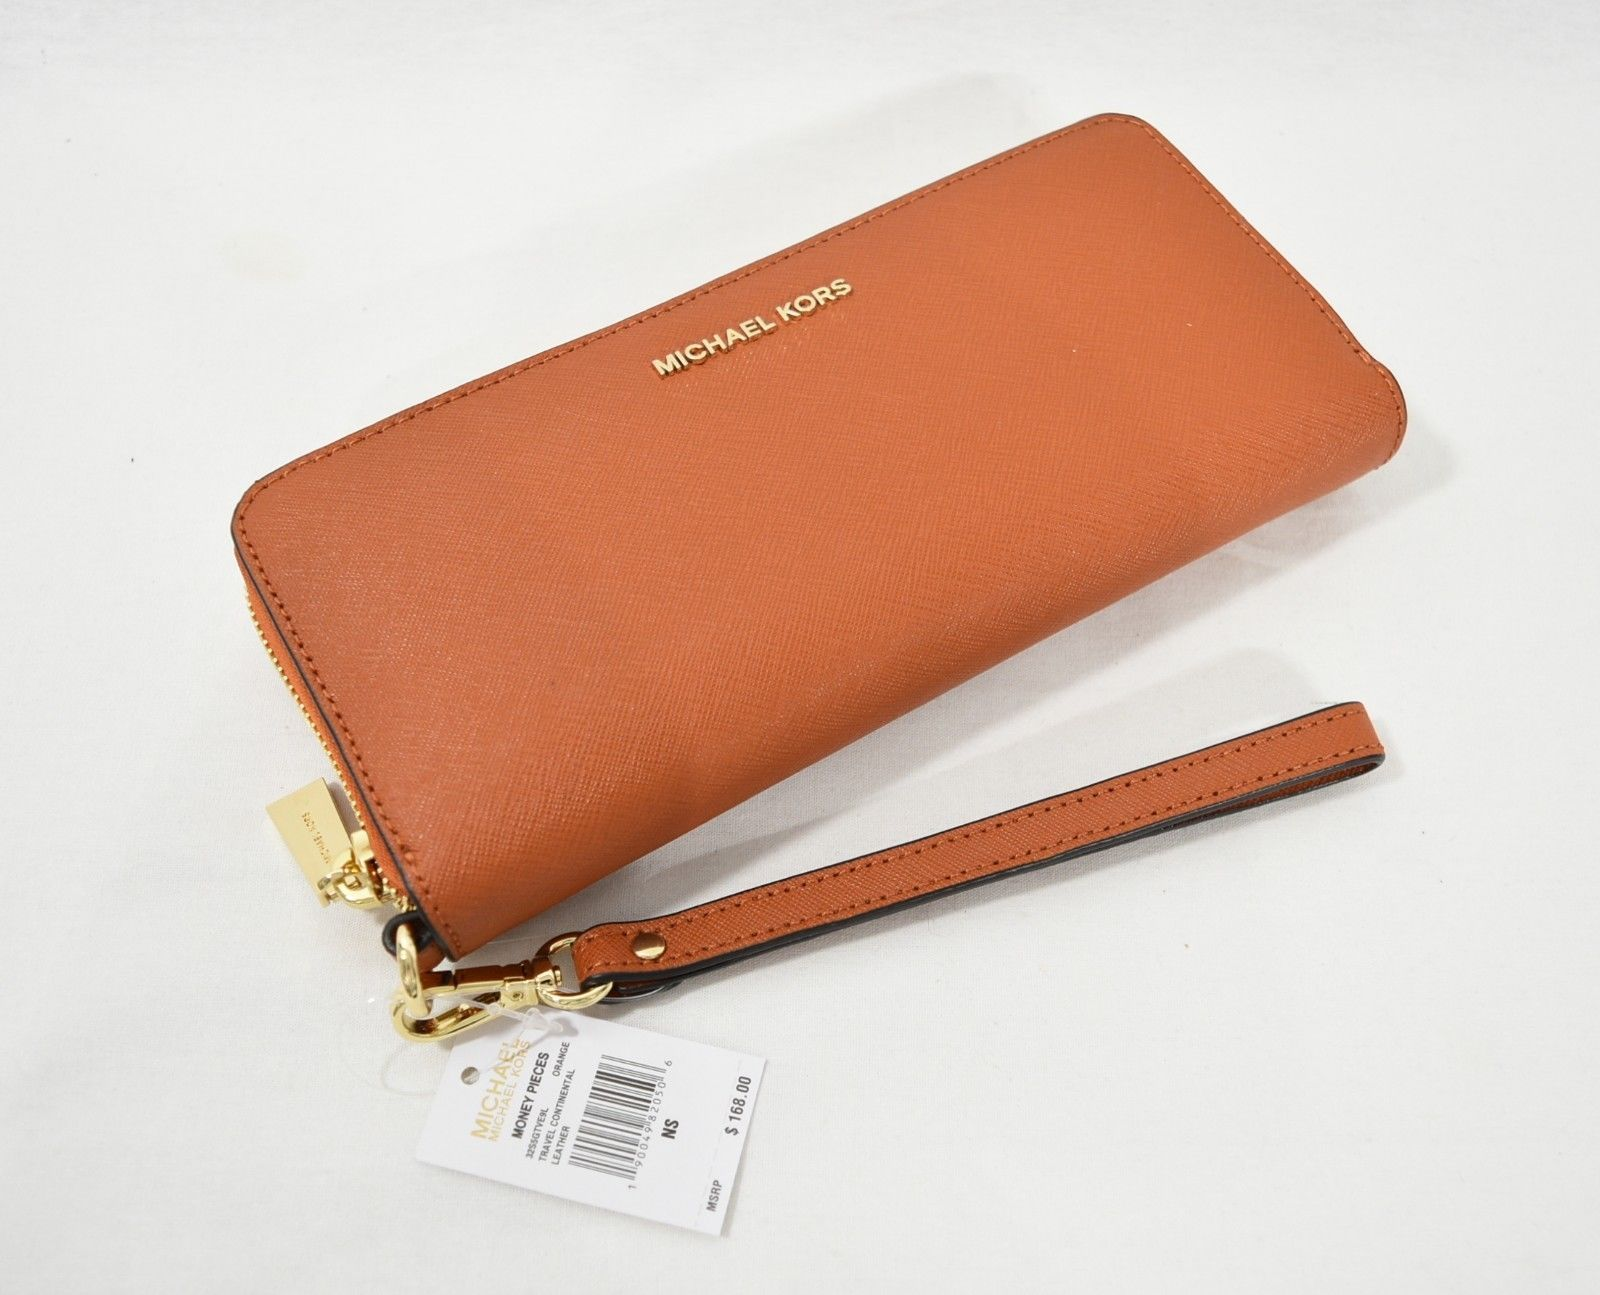 Primary image for NWT Michael Kors Money Pieces Continental Wallet/ Wristlet in Orange